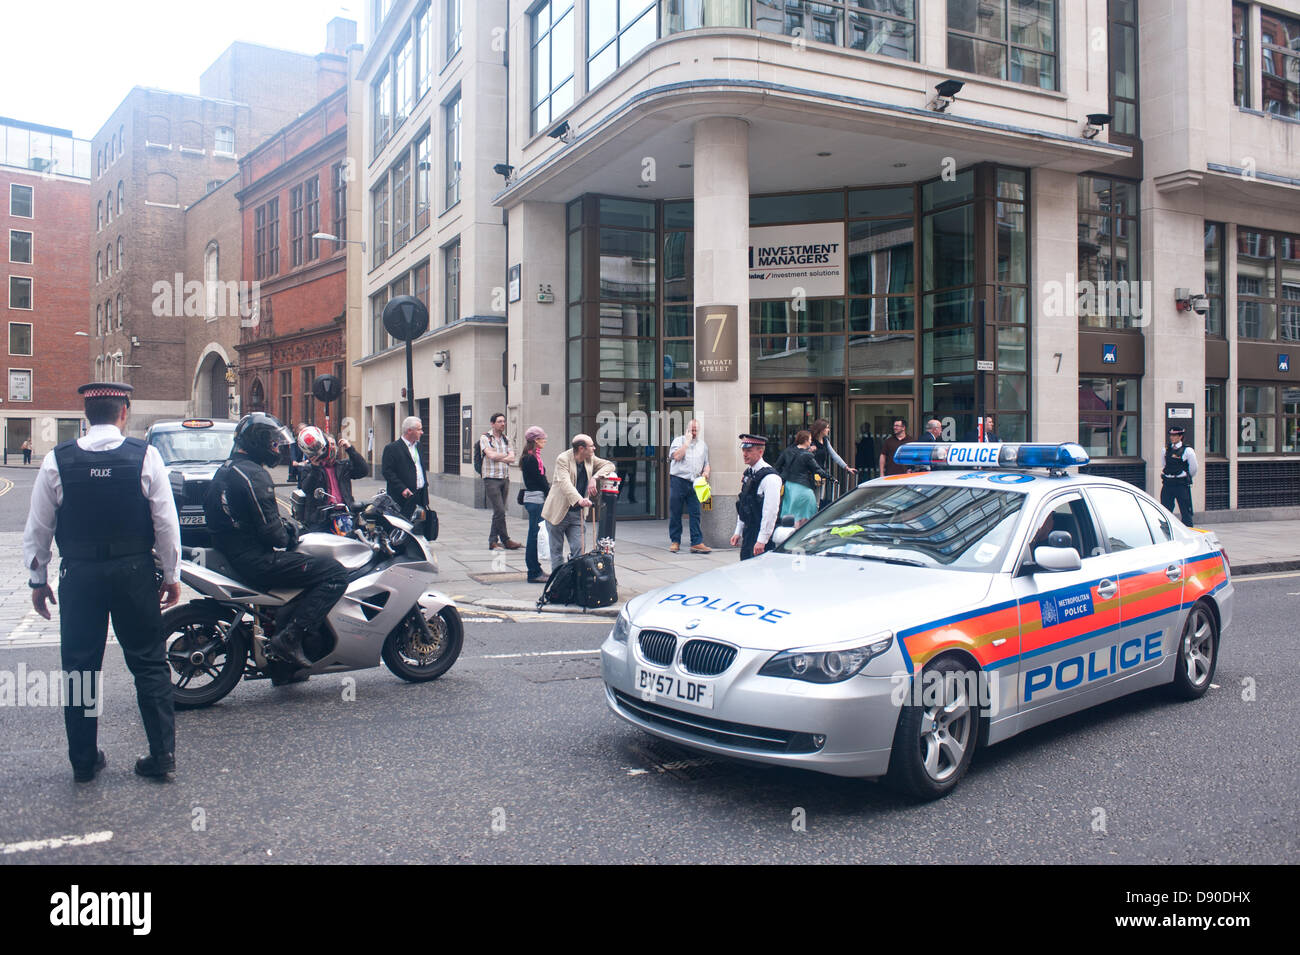 London, UK - 7 June 2013: Police blocks traffic and people before the passage of two vans believed to be carrying - Stock Image